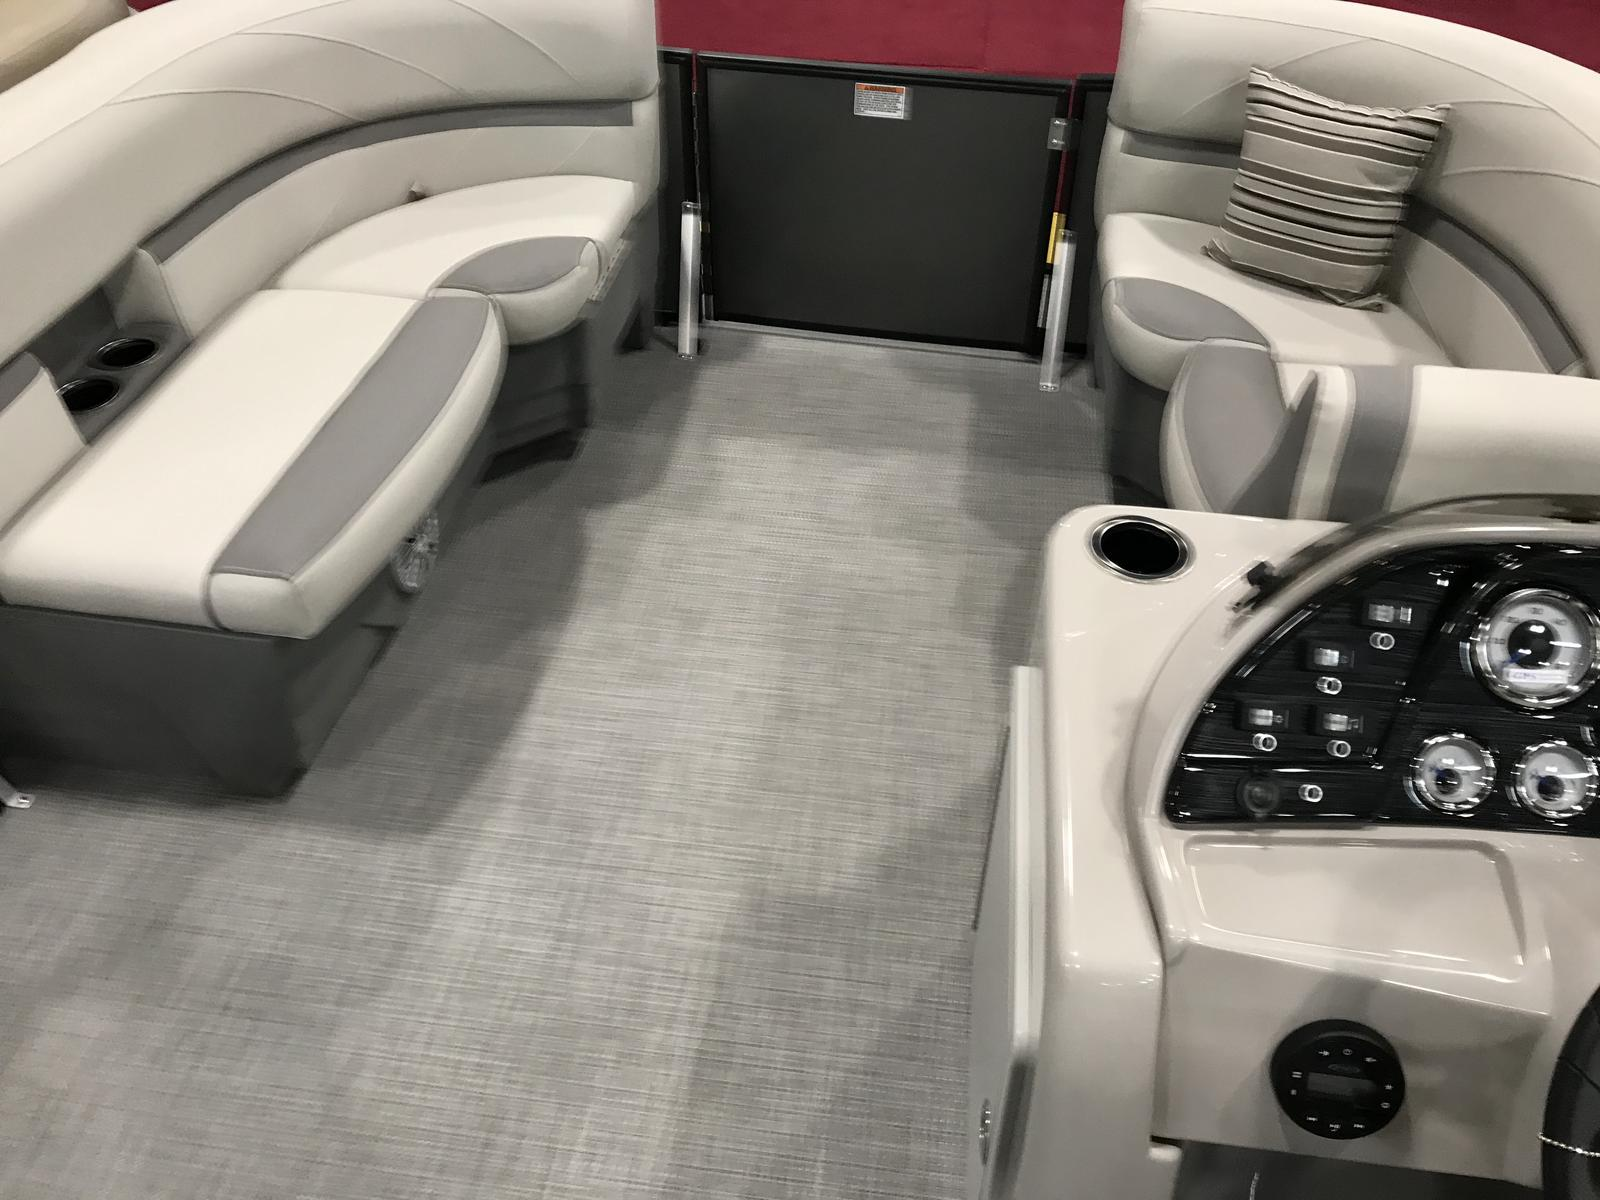 2020 SunChaser boat for sale, model of the boat is Geneva Cruise 20 LR DH & Image # 7 of 11